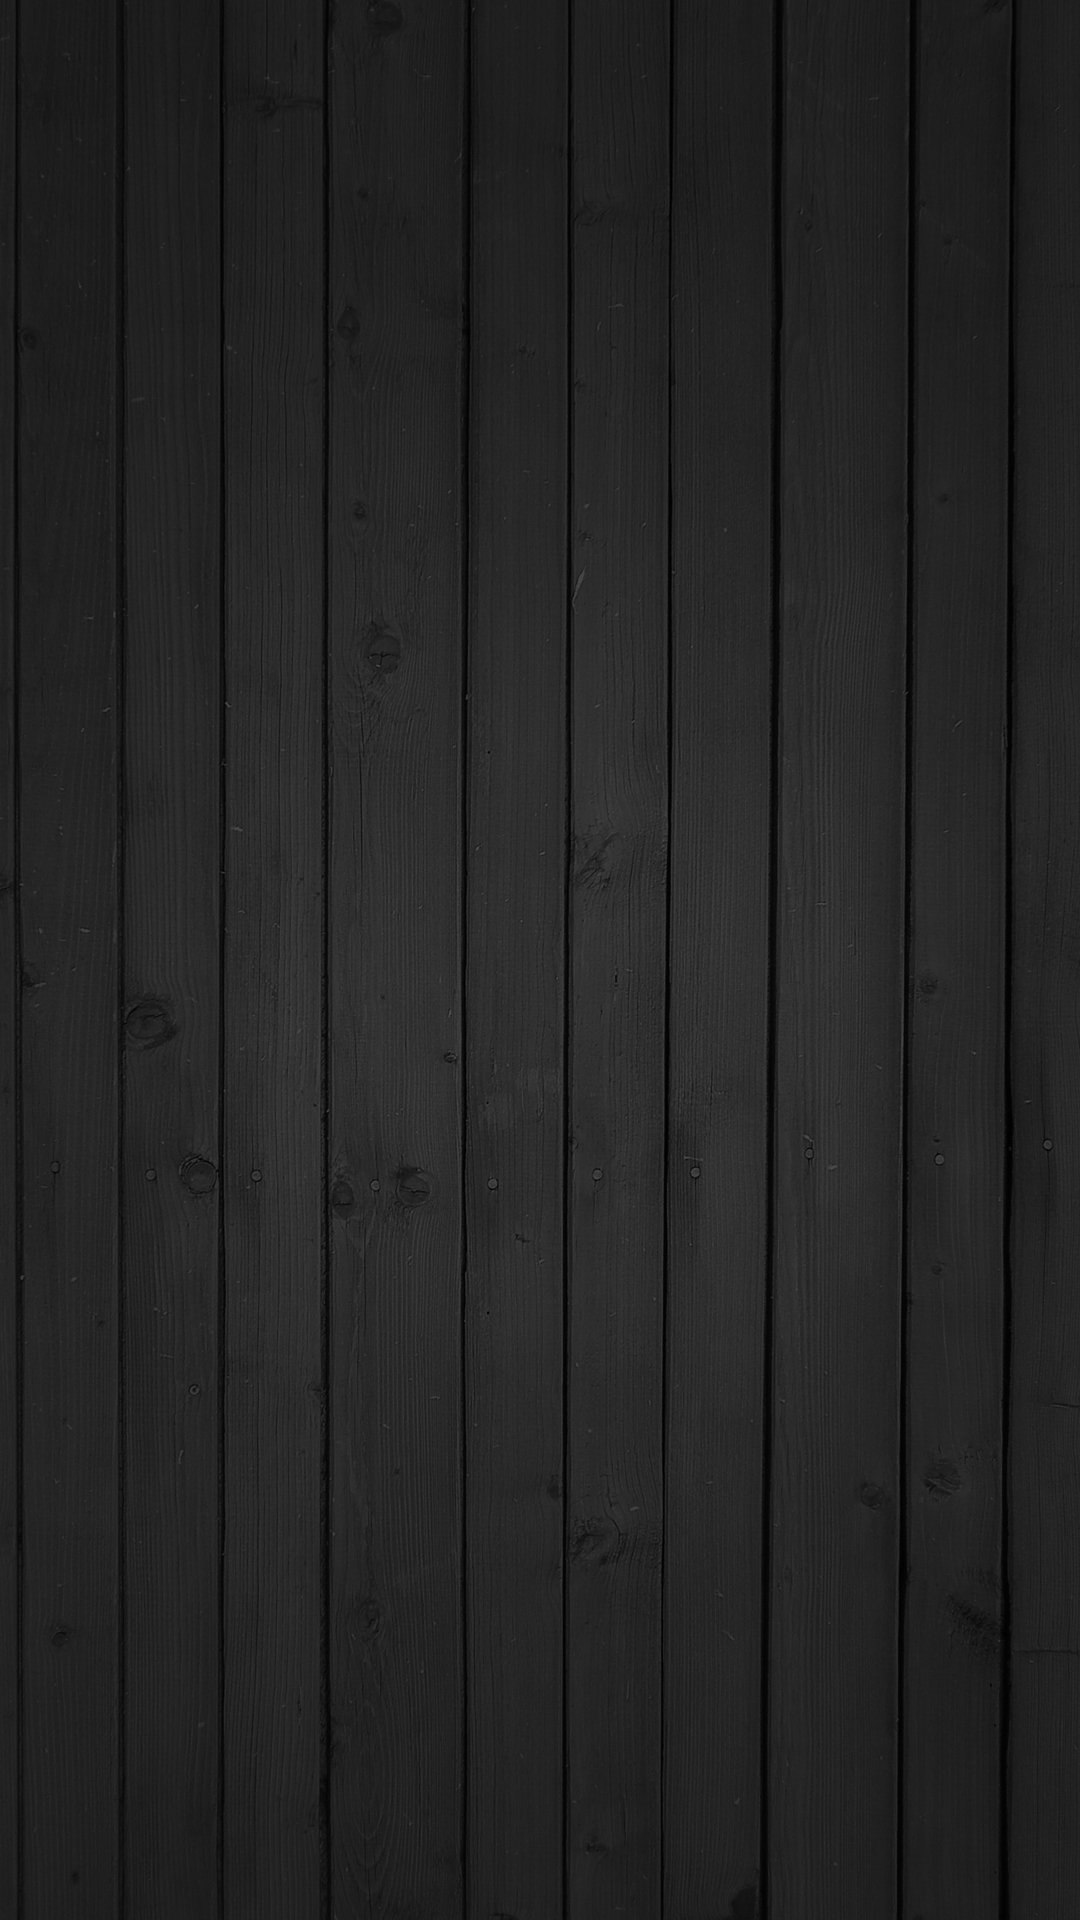 Hd wallpaper for galaxy s4 wallpapersafari designs and textures 3d minimalistic backgrounds for galaxy s4 1080x1920 voltagebd Choice Image